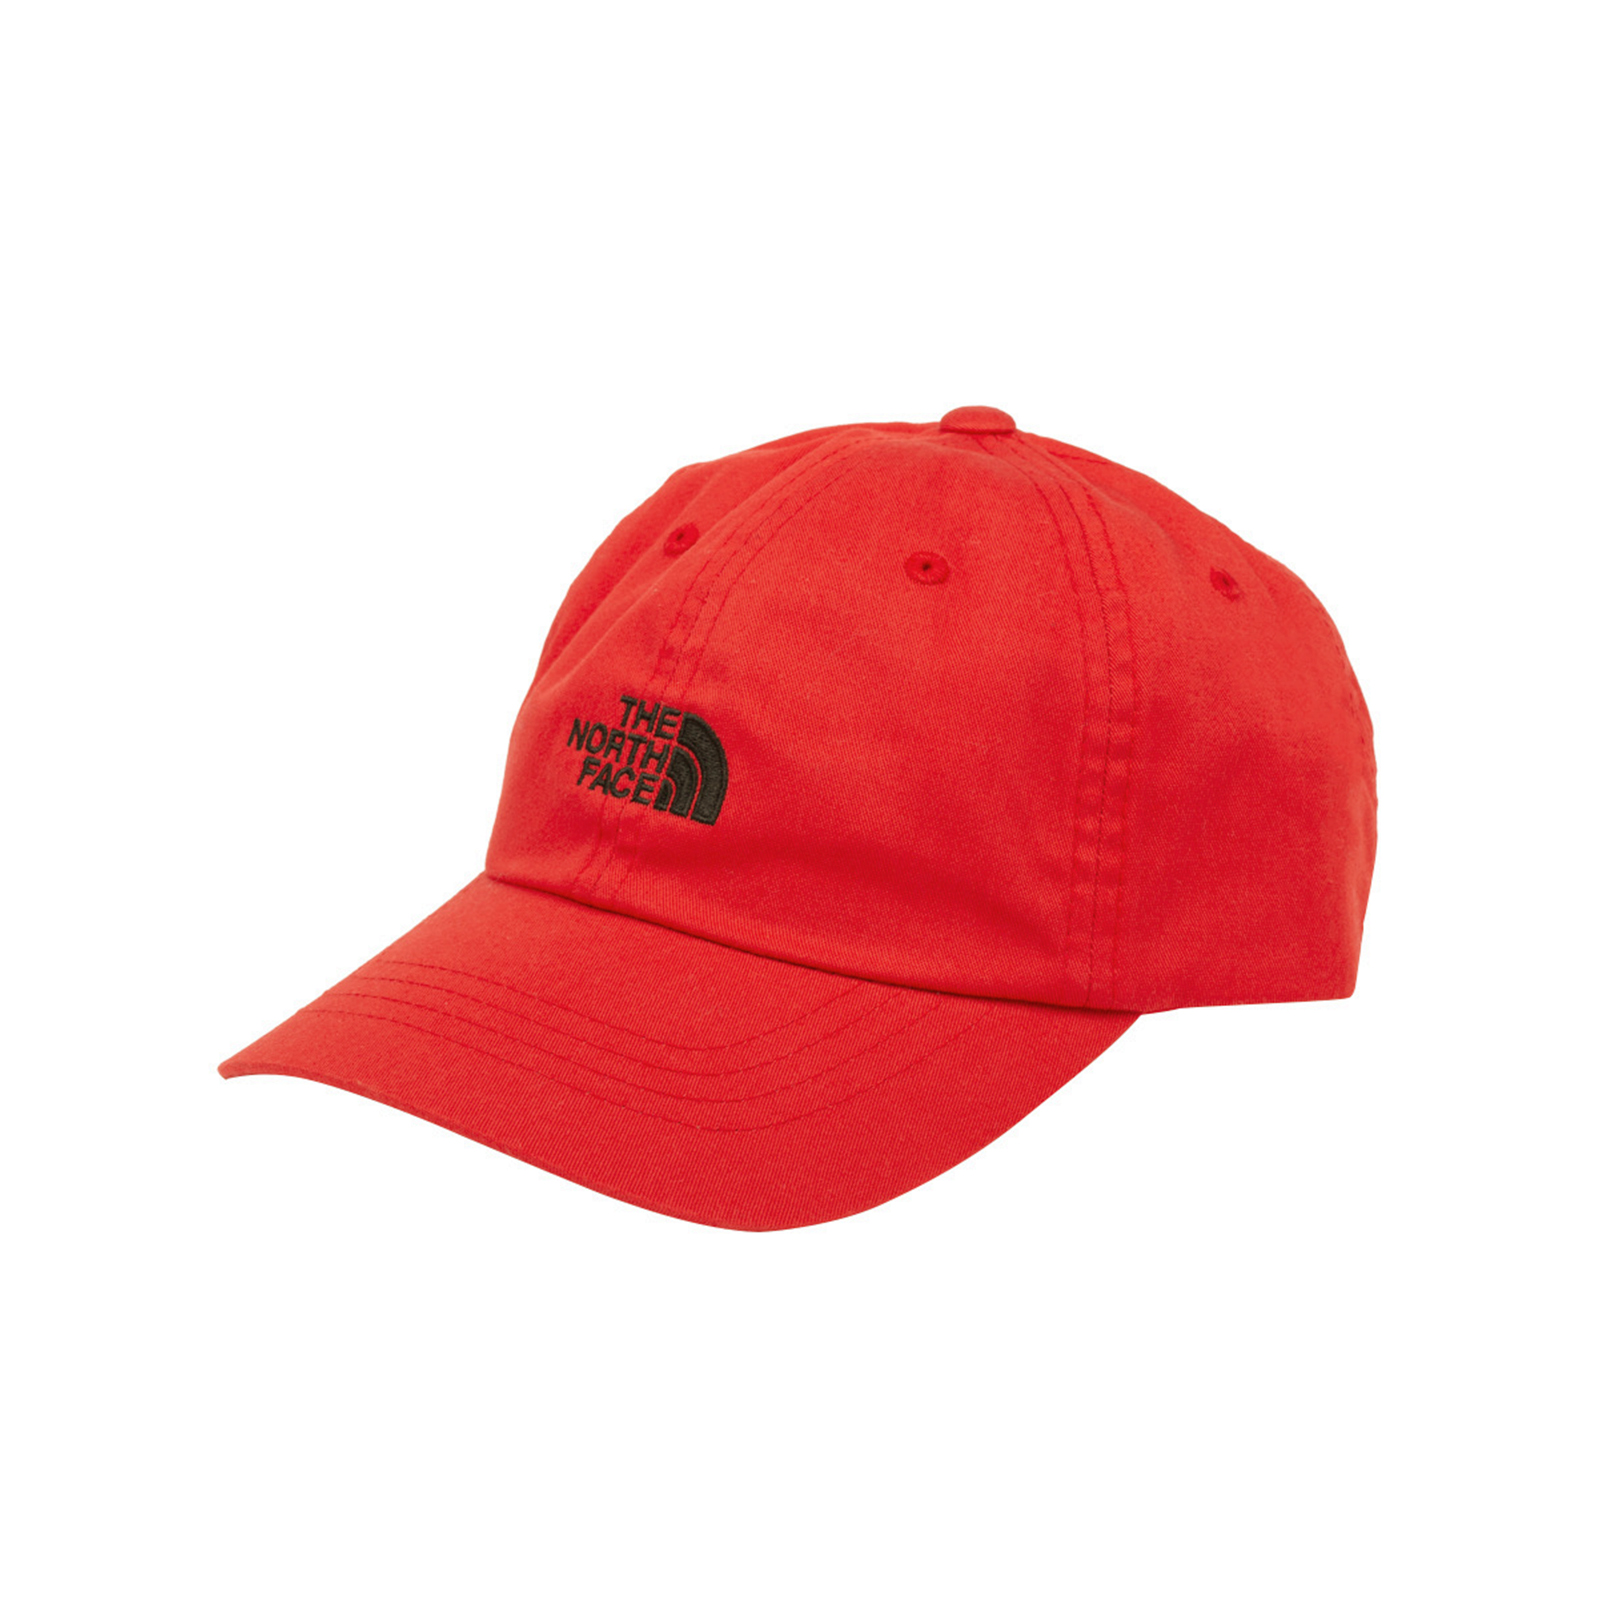 0d932e6f882 The North Face Cappelli The Norm Hat Red Black Rosso